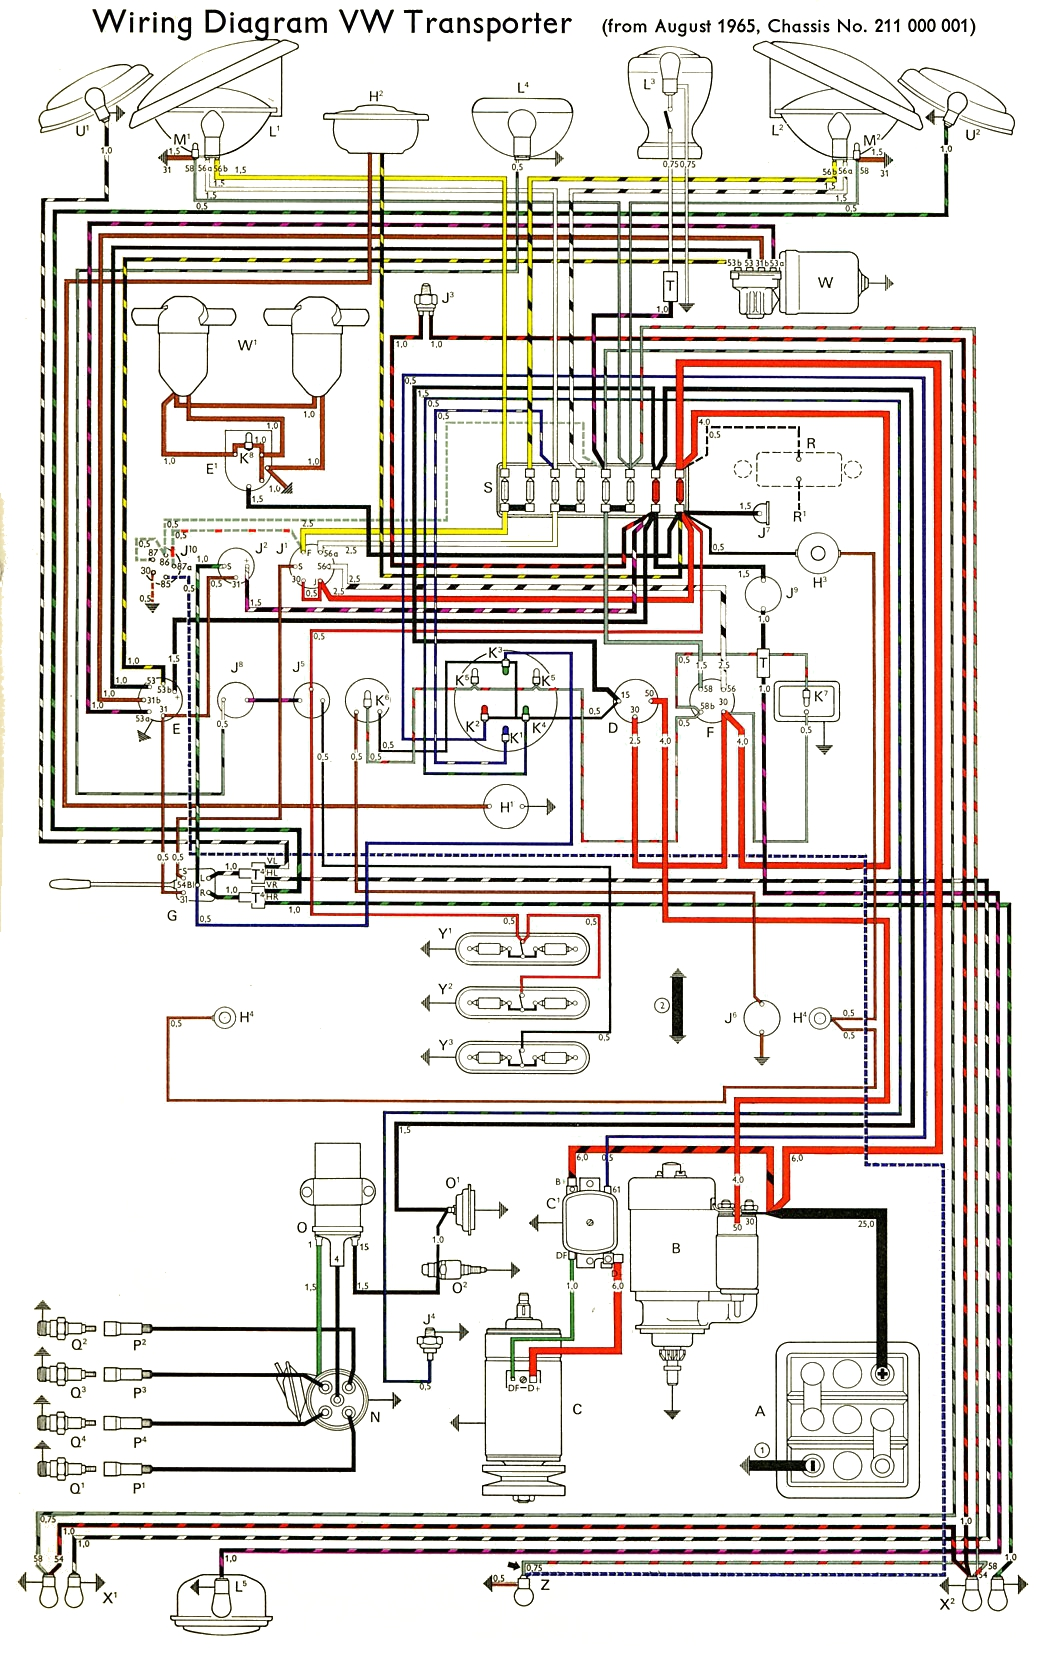 hight resolution of taskmaster f1f5105n wiring diagram electrical wiring diagram technic taskmaster f1f5105n wiring diagram